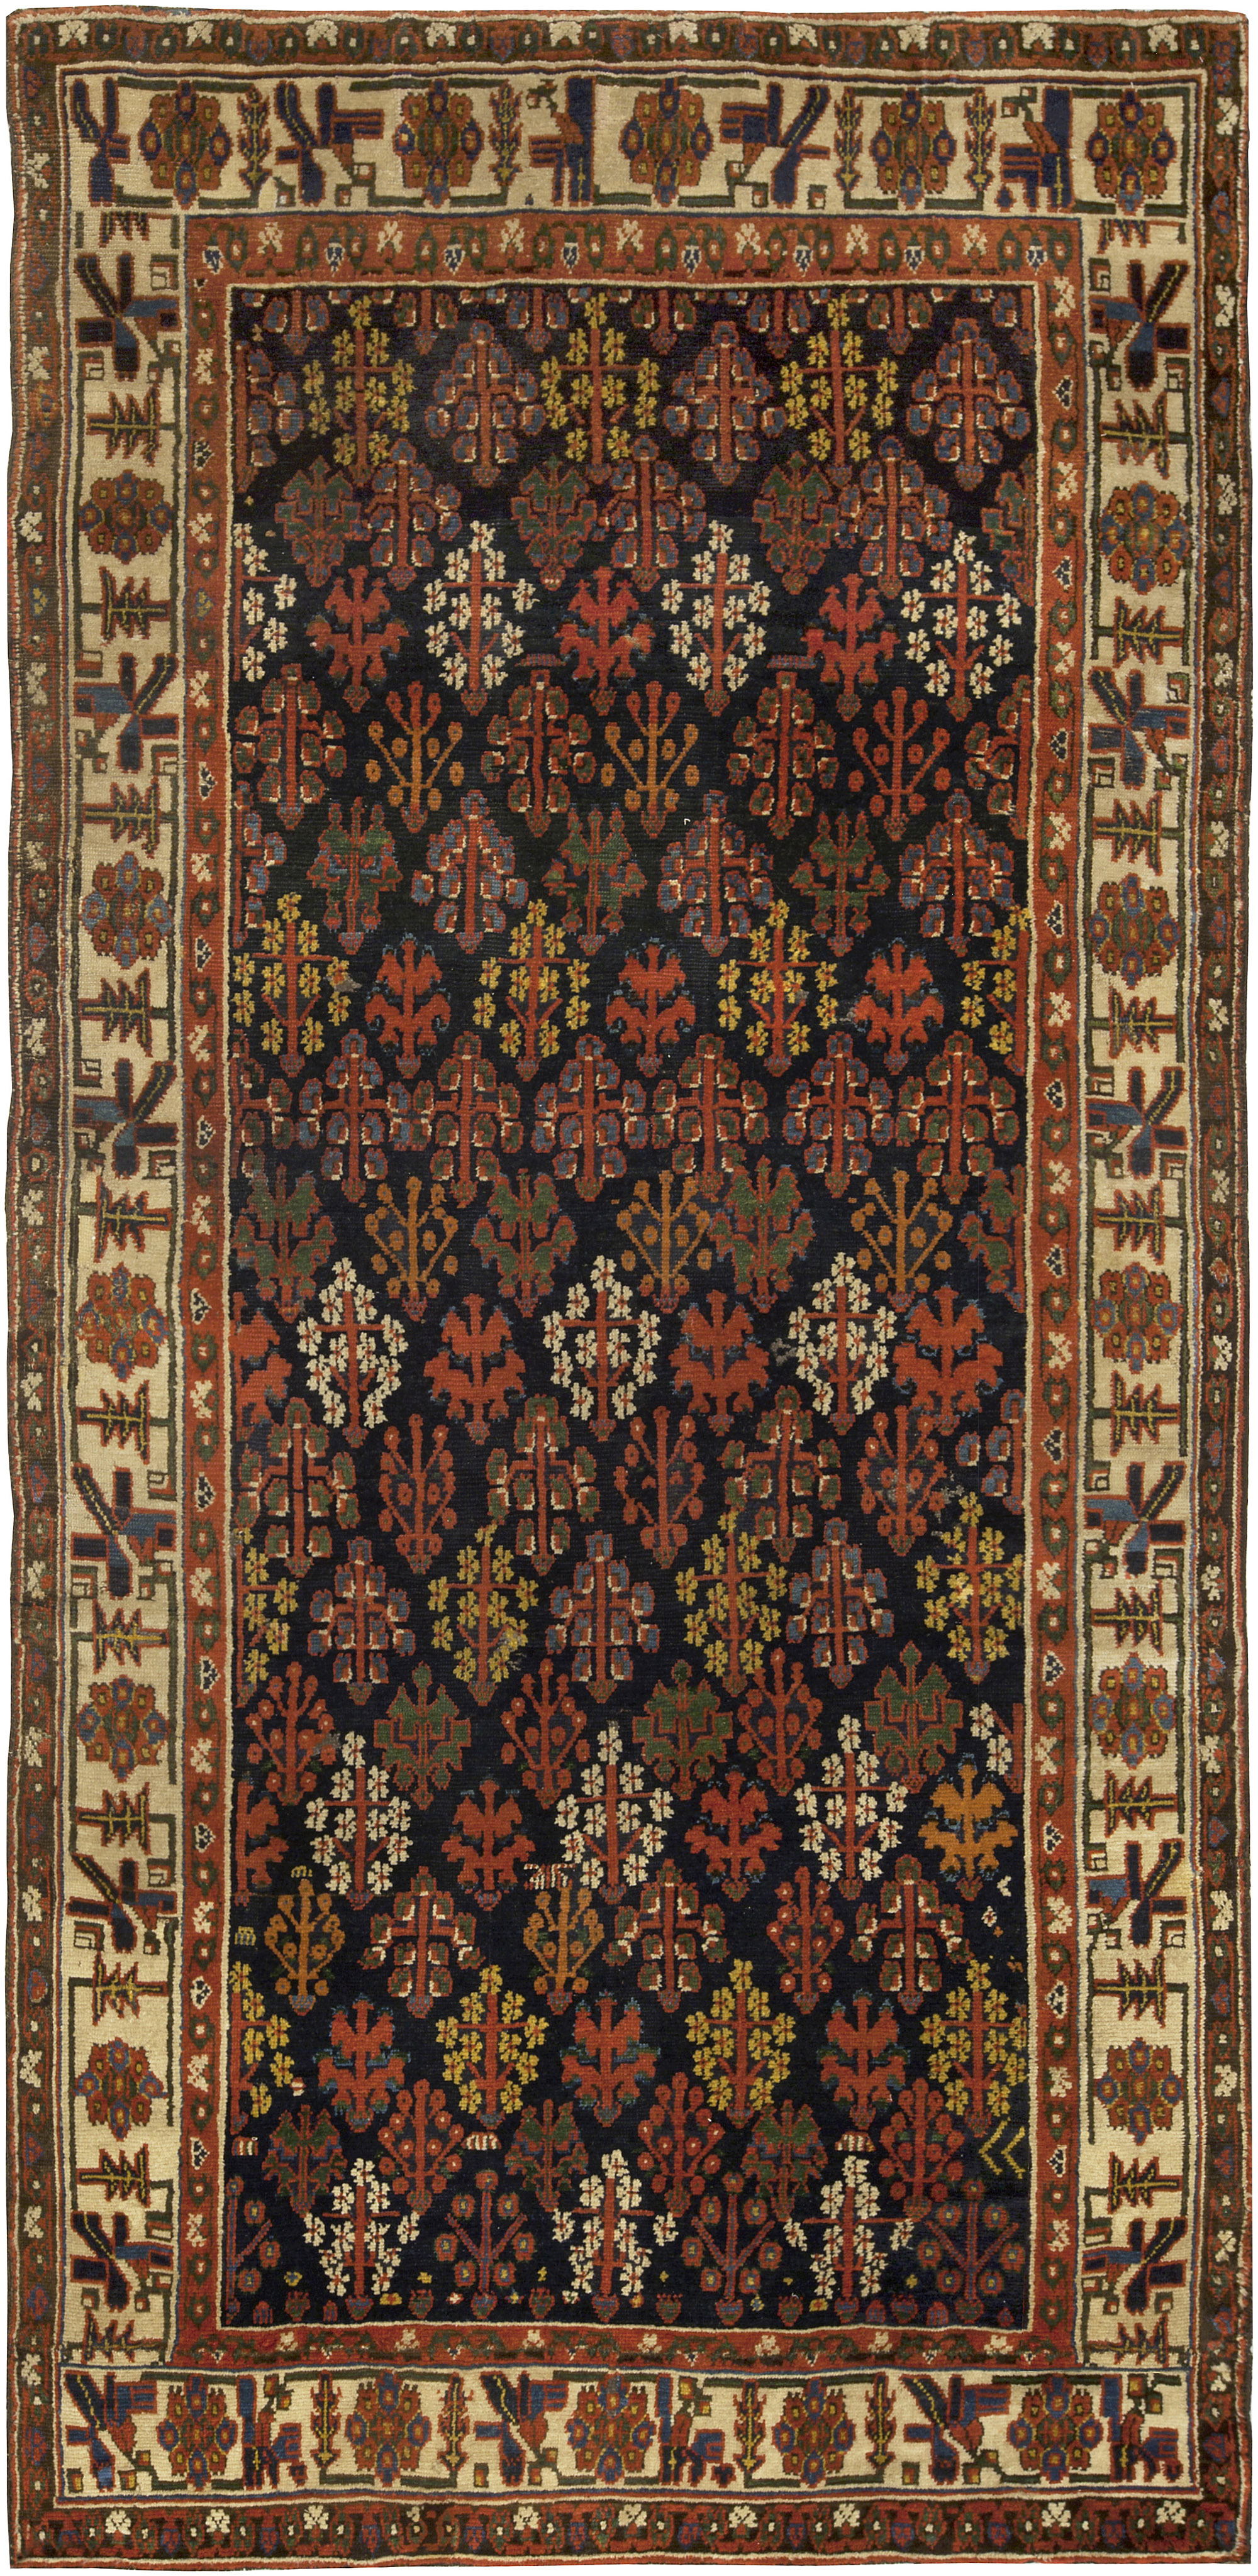 19th Century North West Persian Handwoven Wool Rug Bb5087 By Dlb